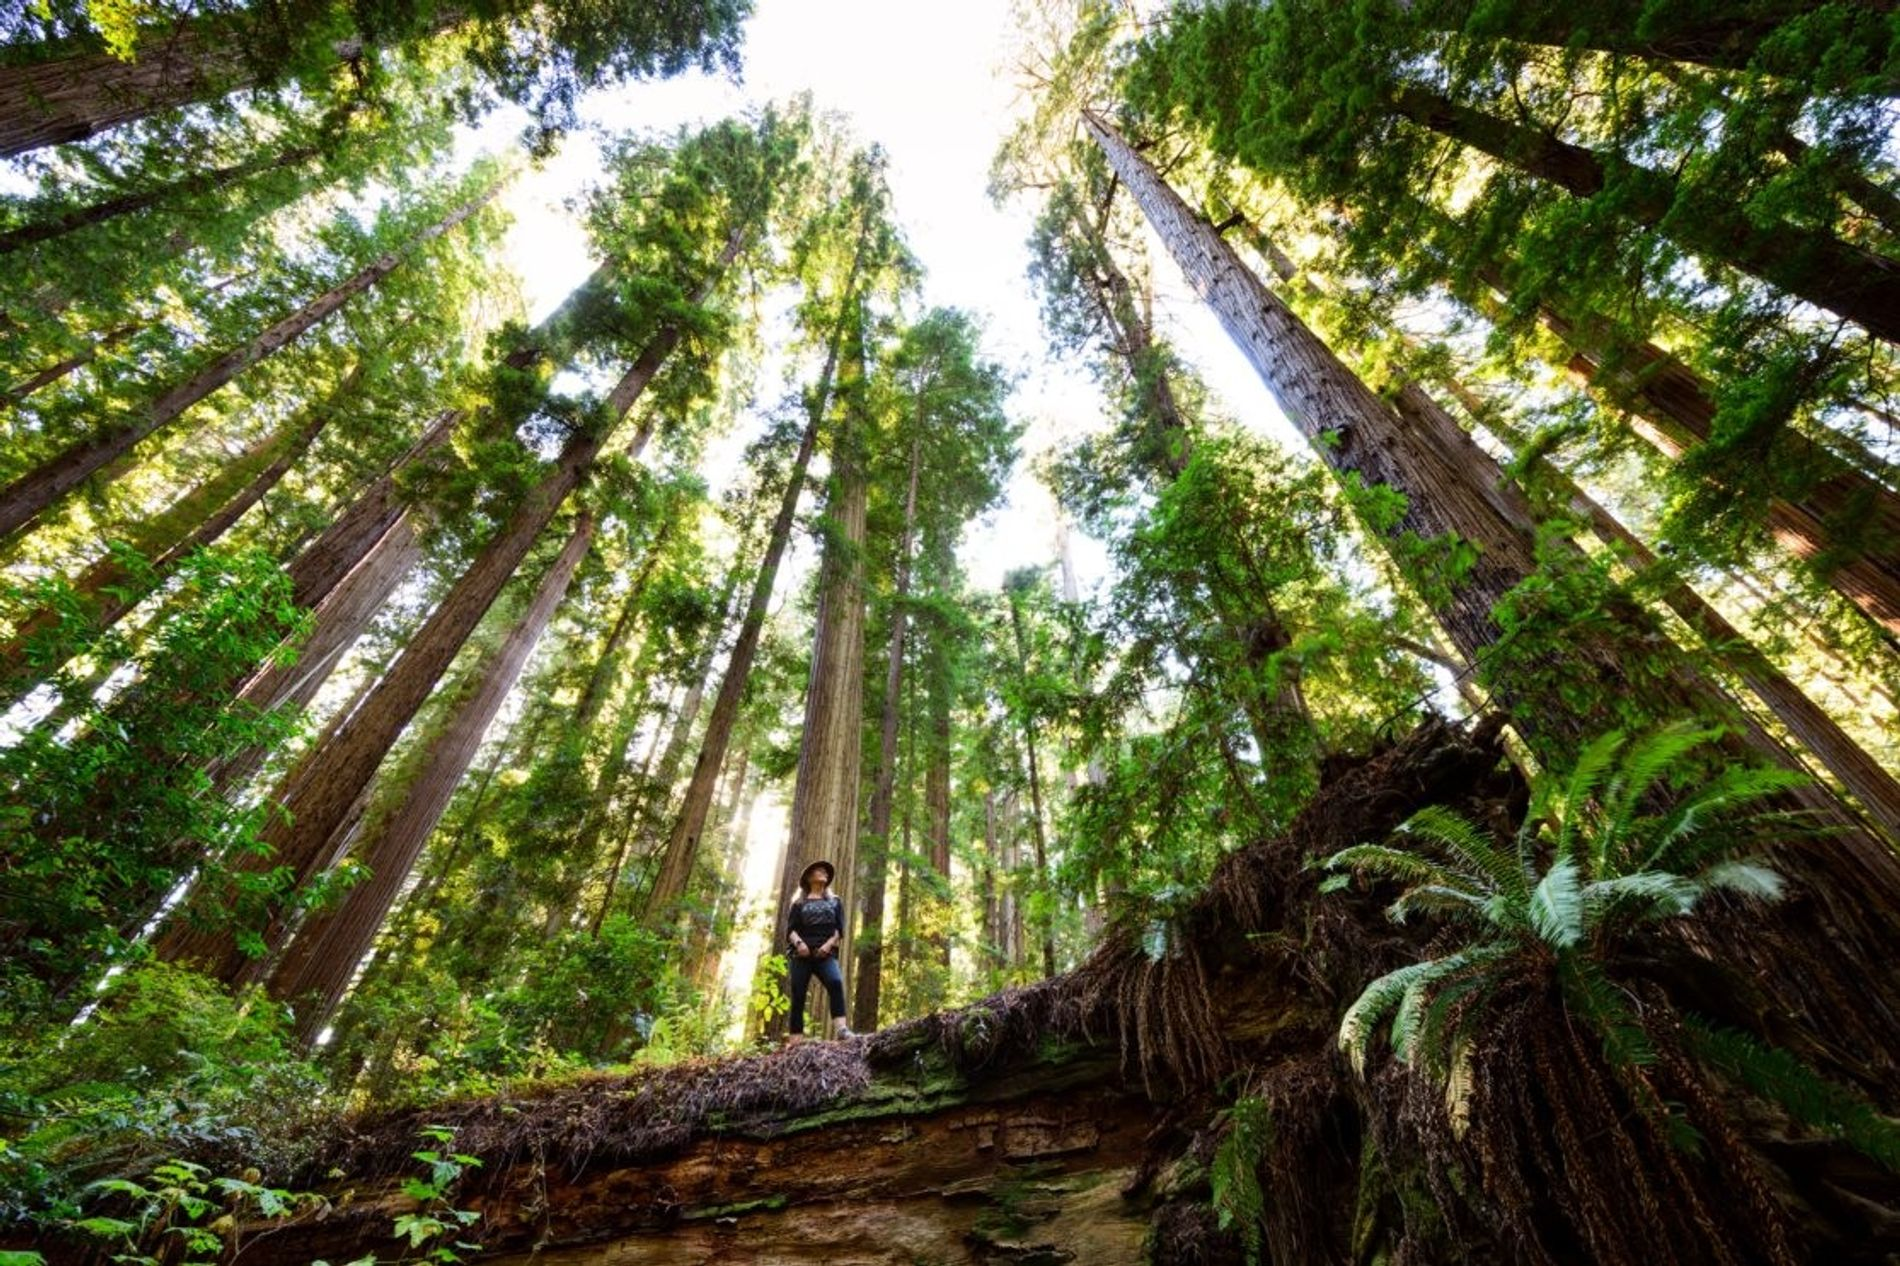 The Cheatham Grove of ancient redwood trees near Crescent City, California, which were used as the ...